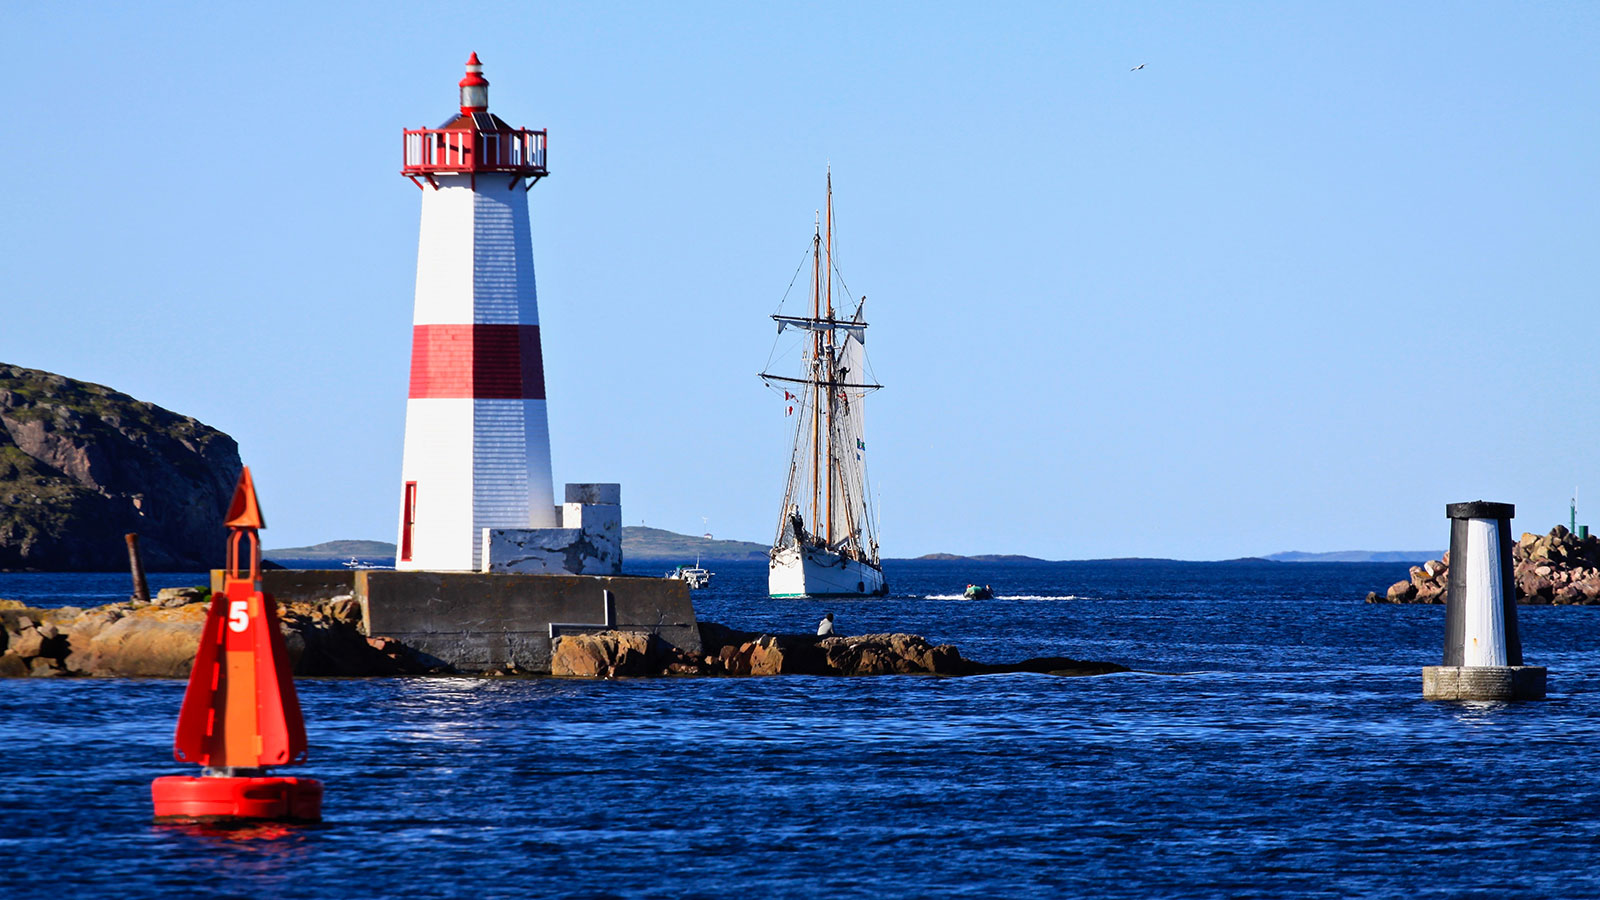 Port de Saint-Pierre et Miquelon Photo Patrick Allain